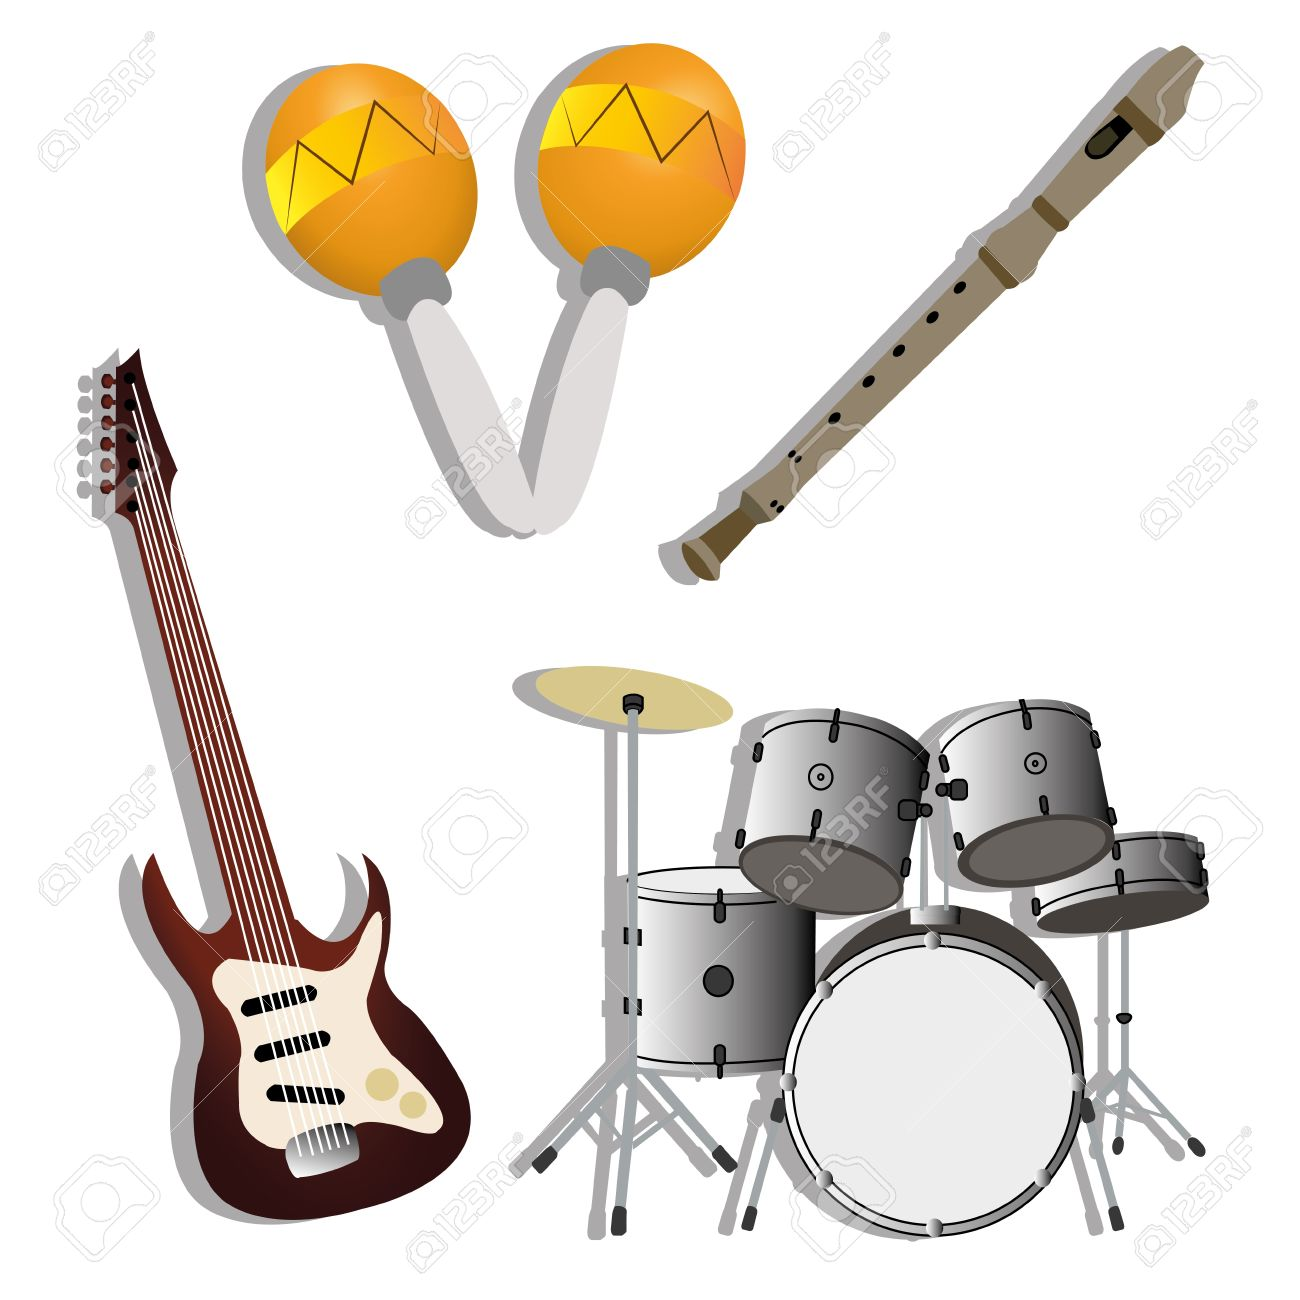 Different Music Instruments With Shadow Effect On White Background.